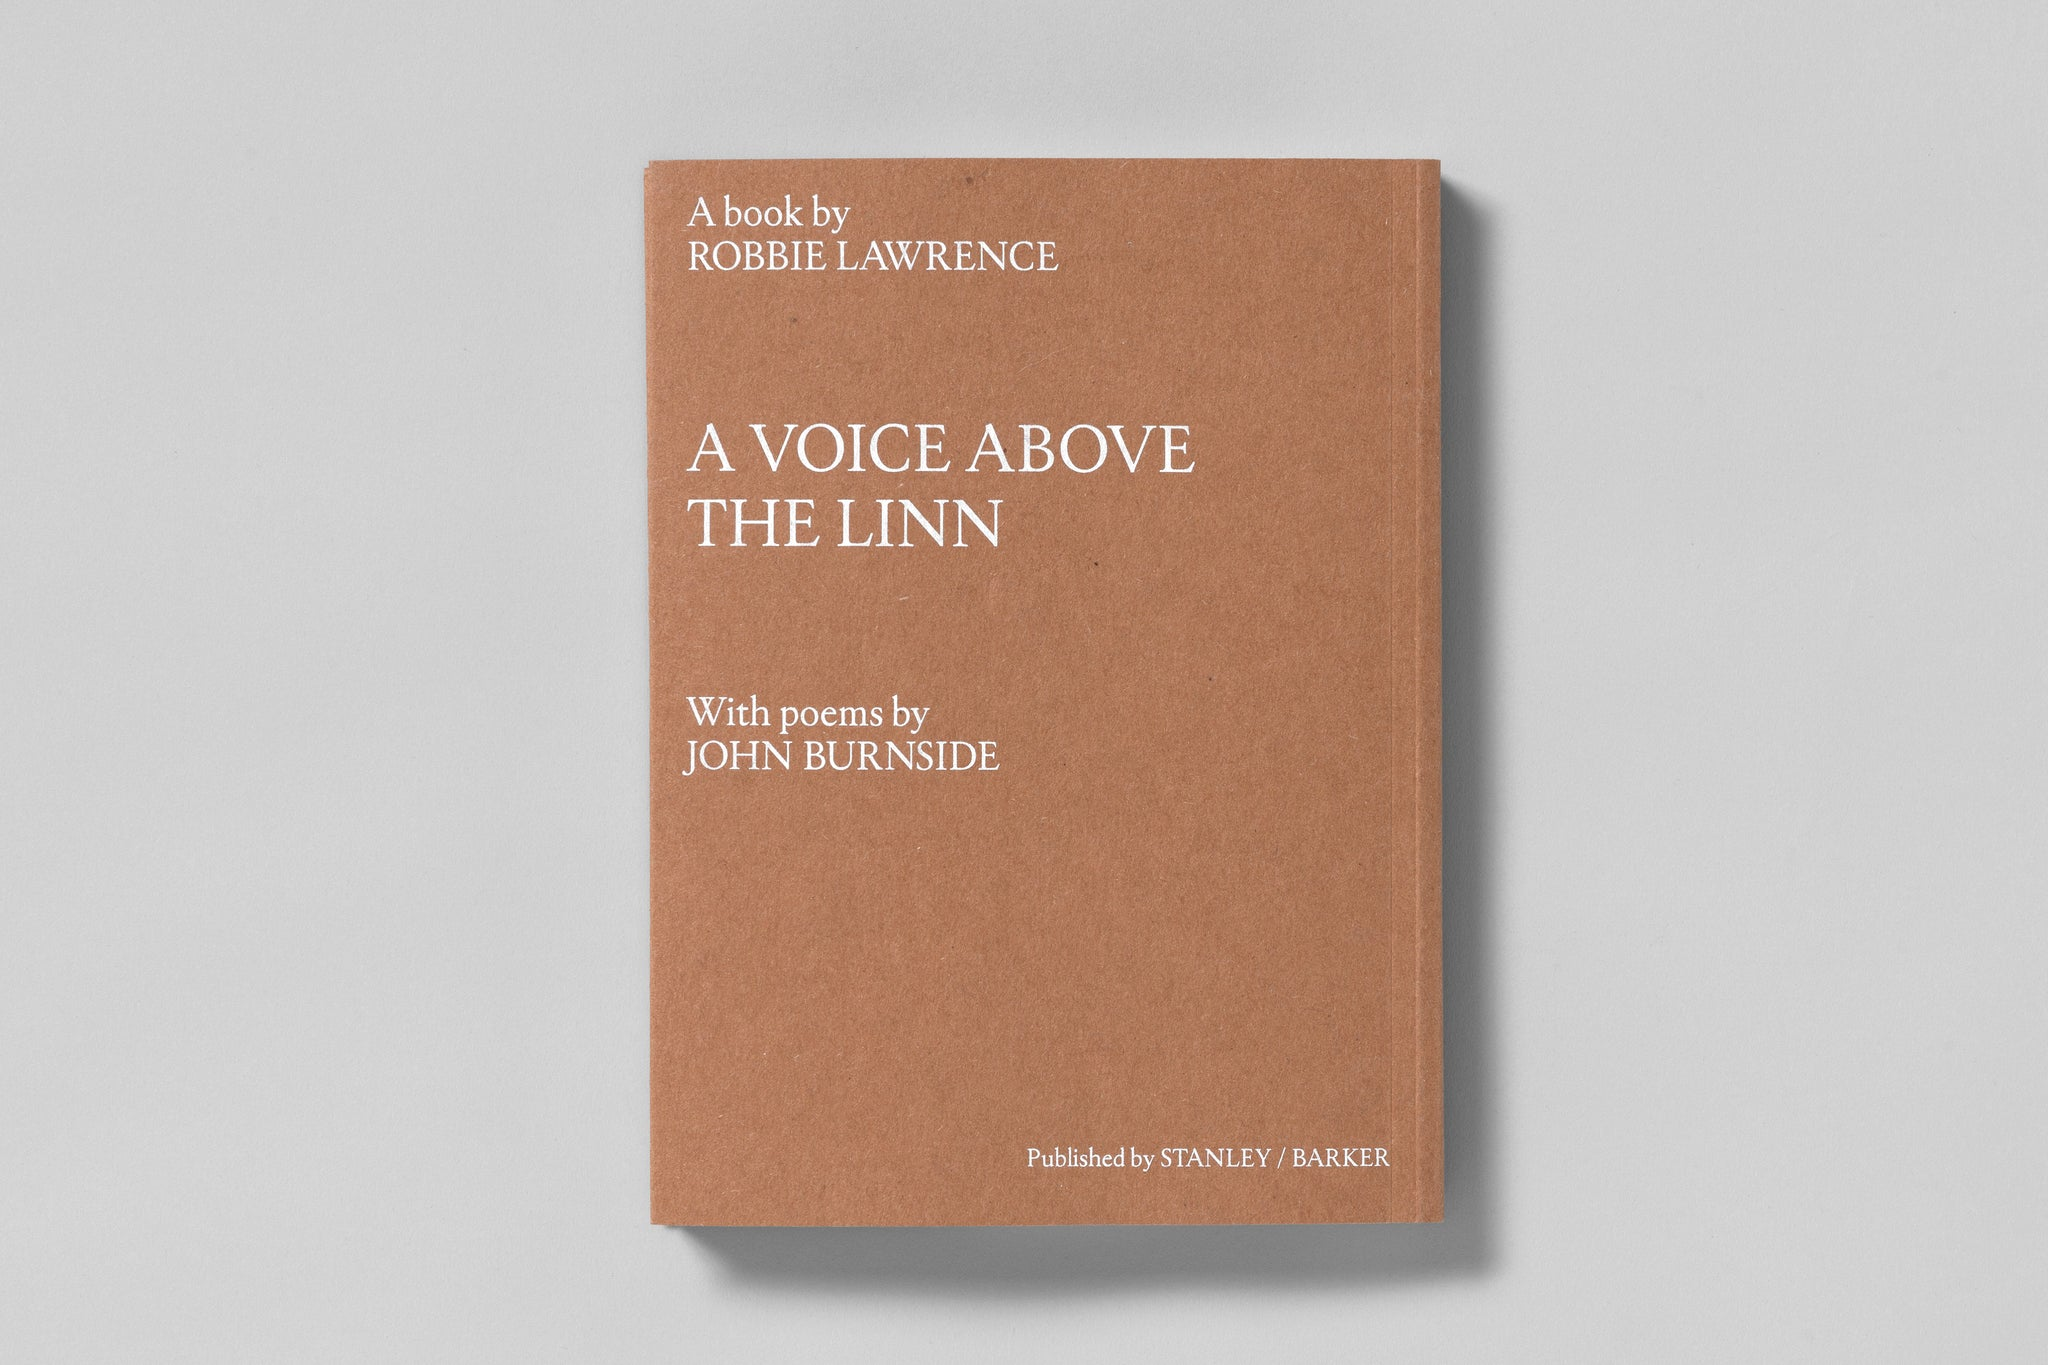 A Voice Above the Linn